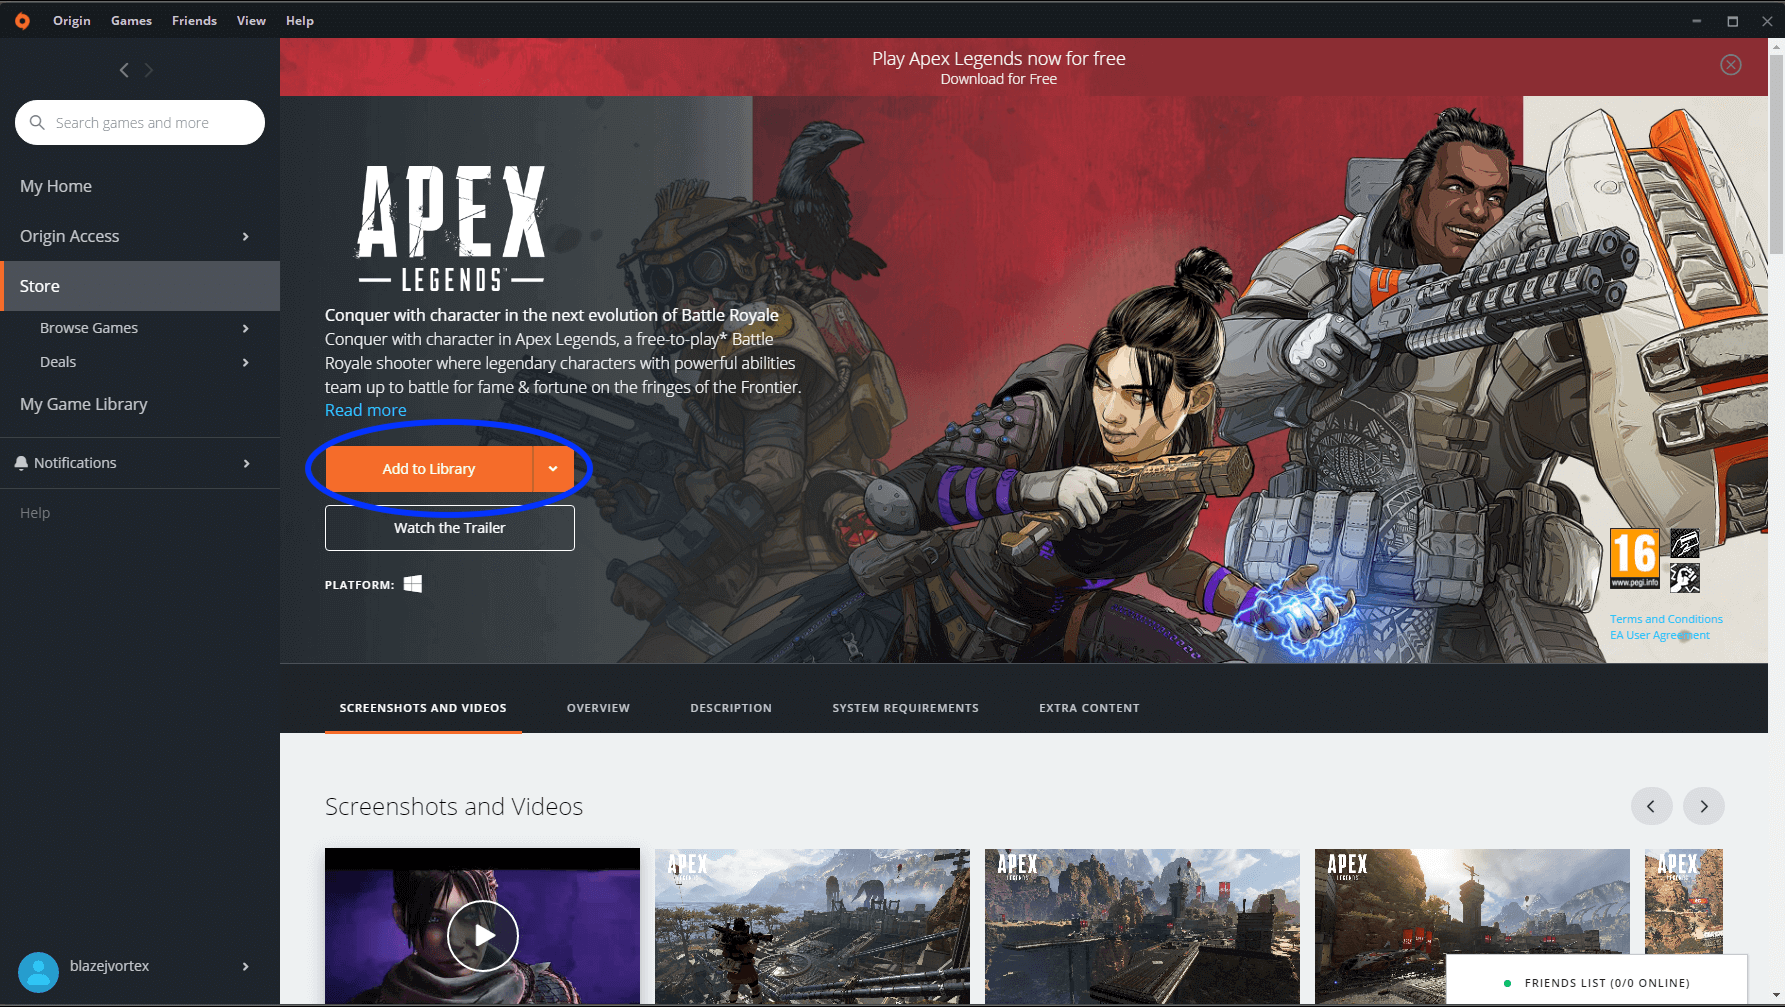 Add Apex legends to Origin library